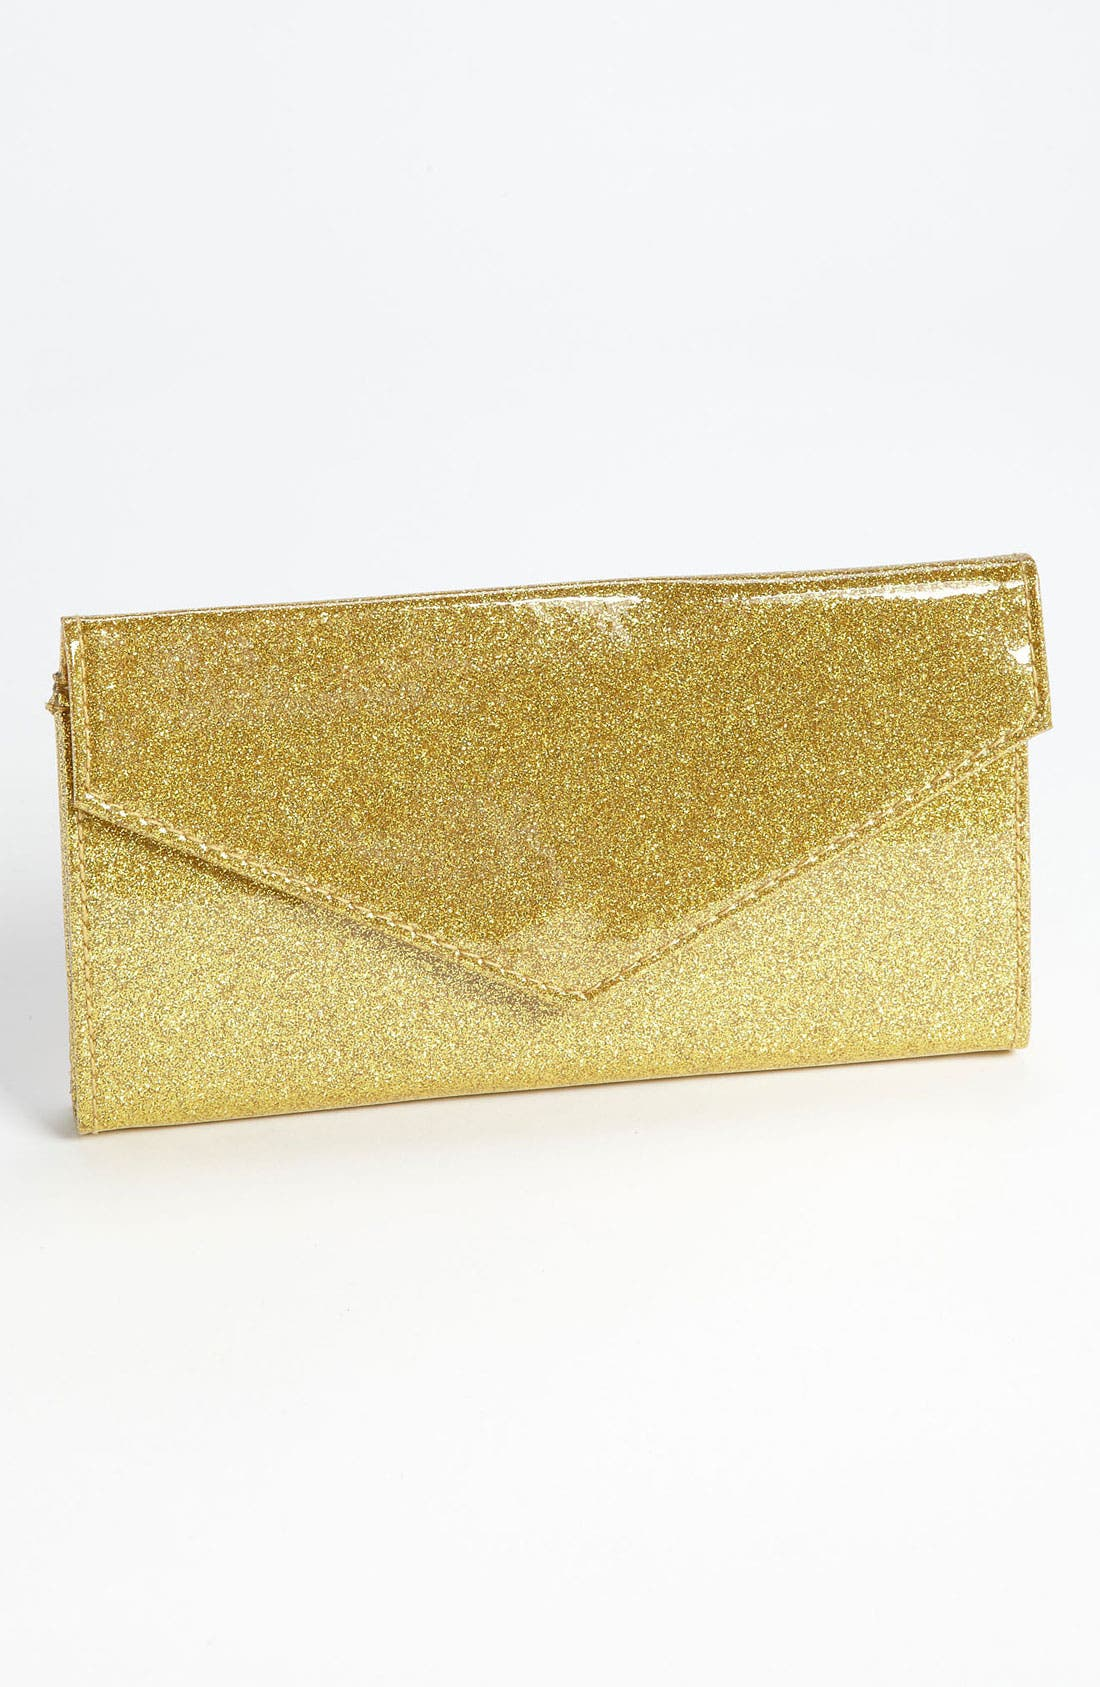 Alternate Image 1 Selected - Lulu Glitter Envelope Wallet